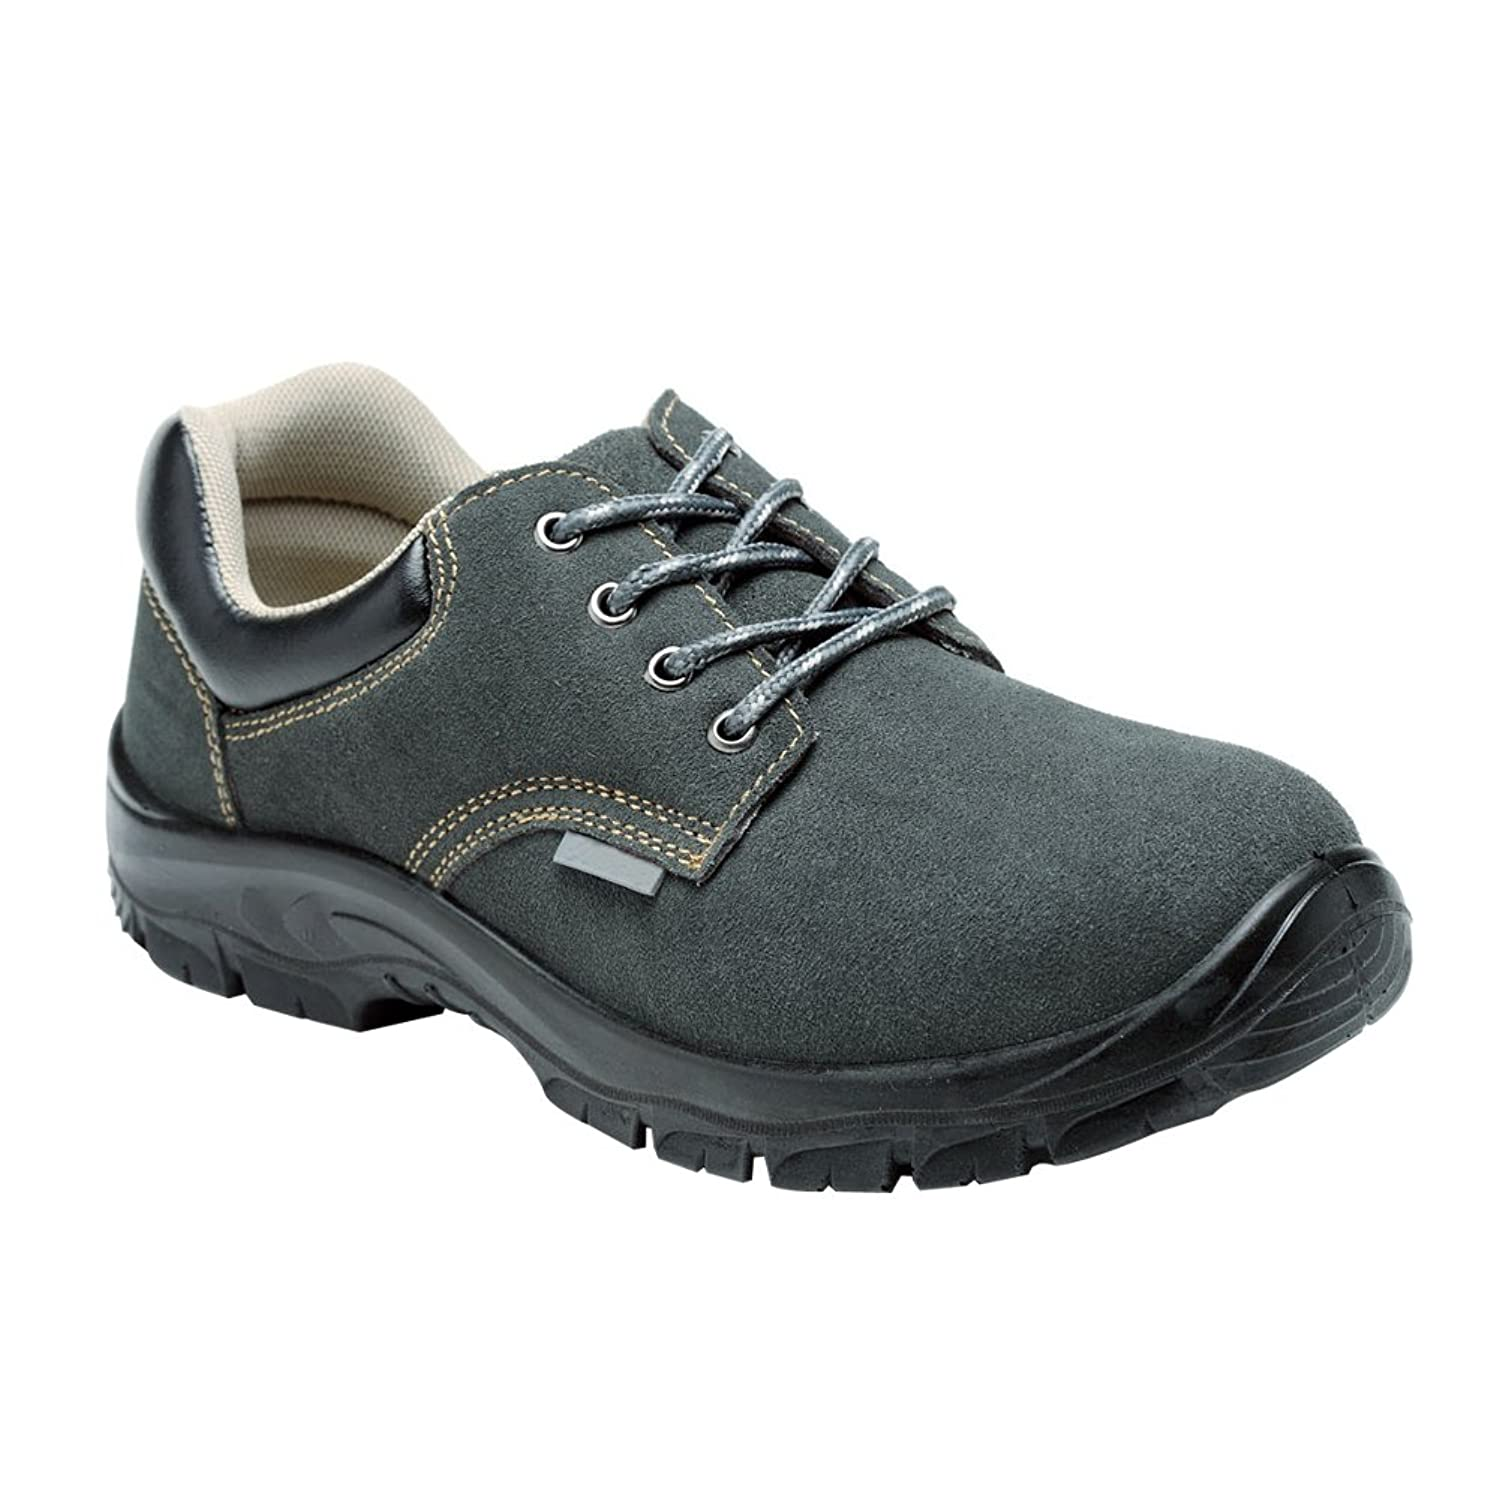 Eclimb Work Men's Steel-Toe Athletic Safety Shoe B01LZFO2X6 26.0 cm